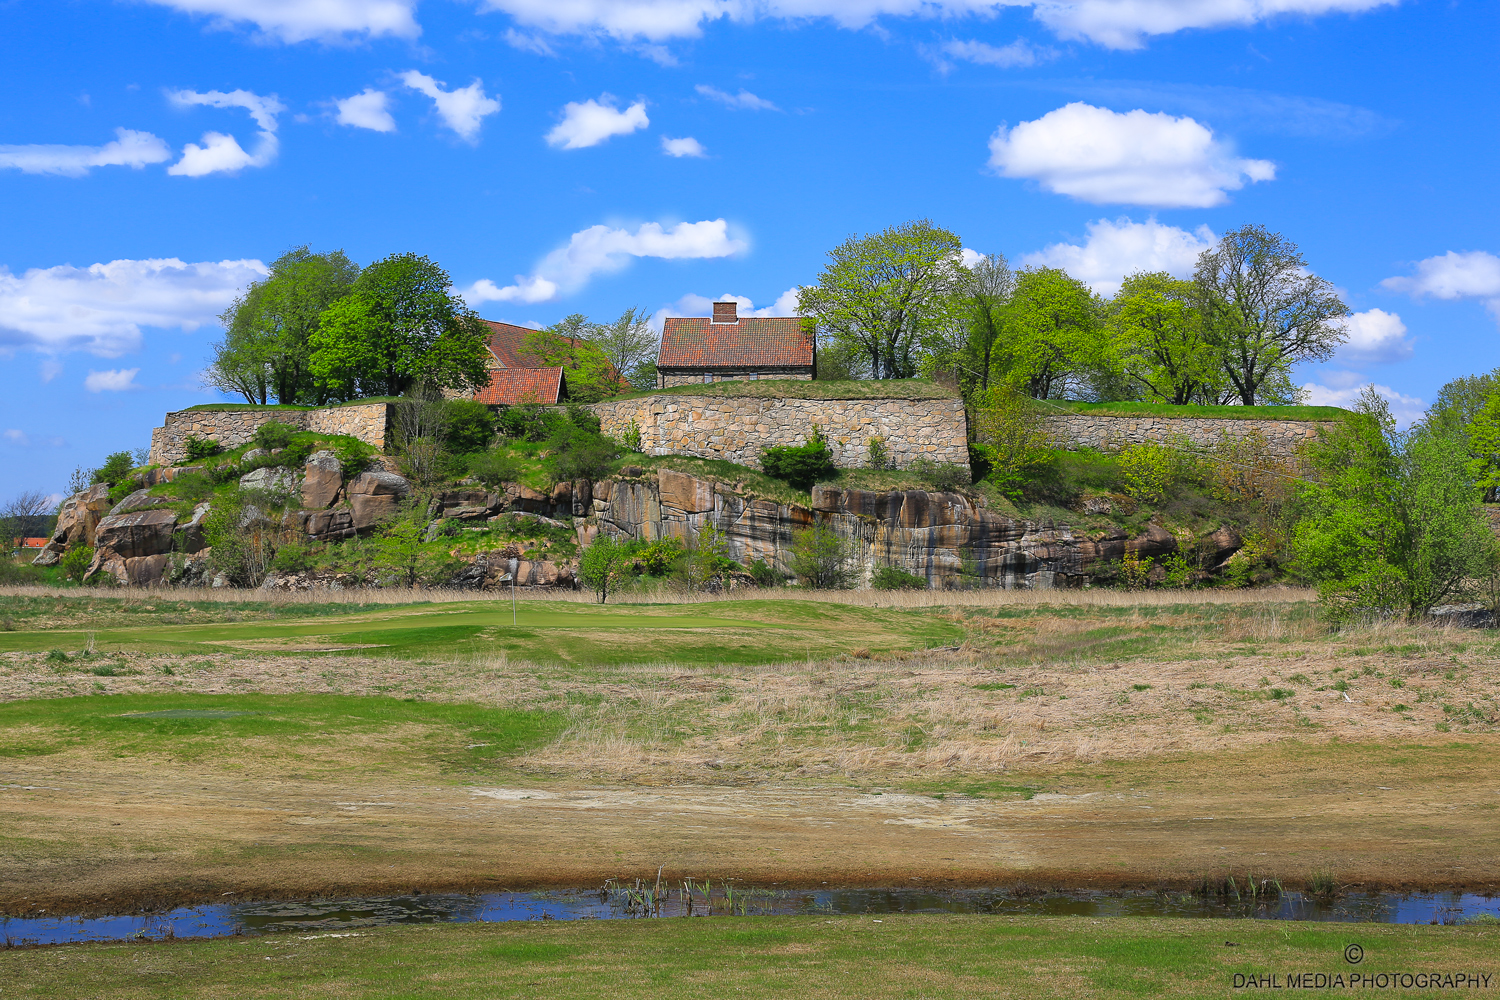 The Kongsten Fortress – The Cliff in Old Fredrikstad